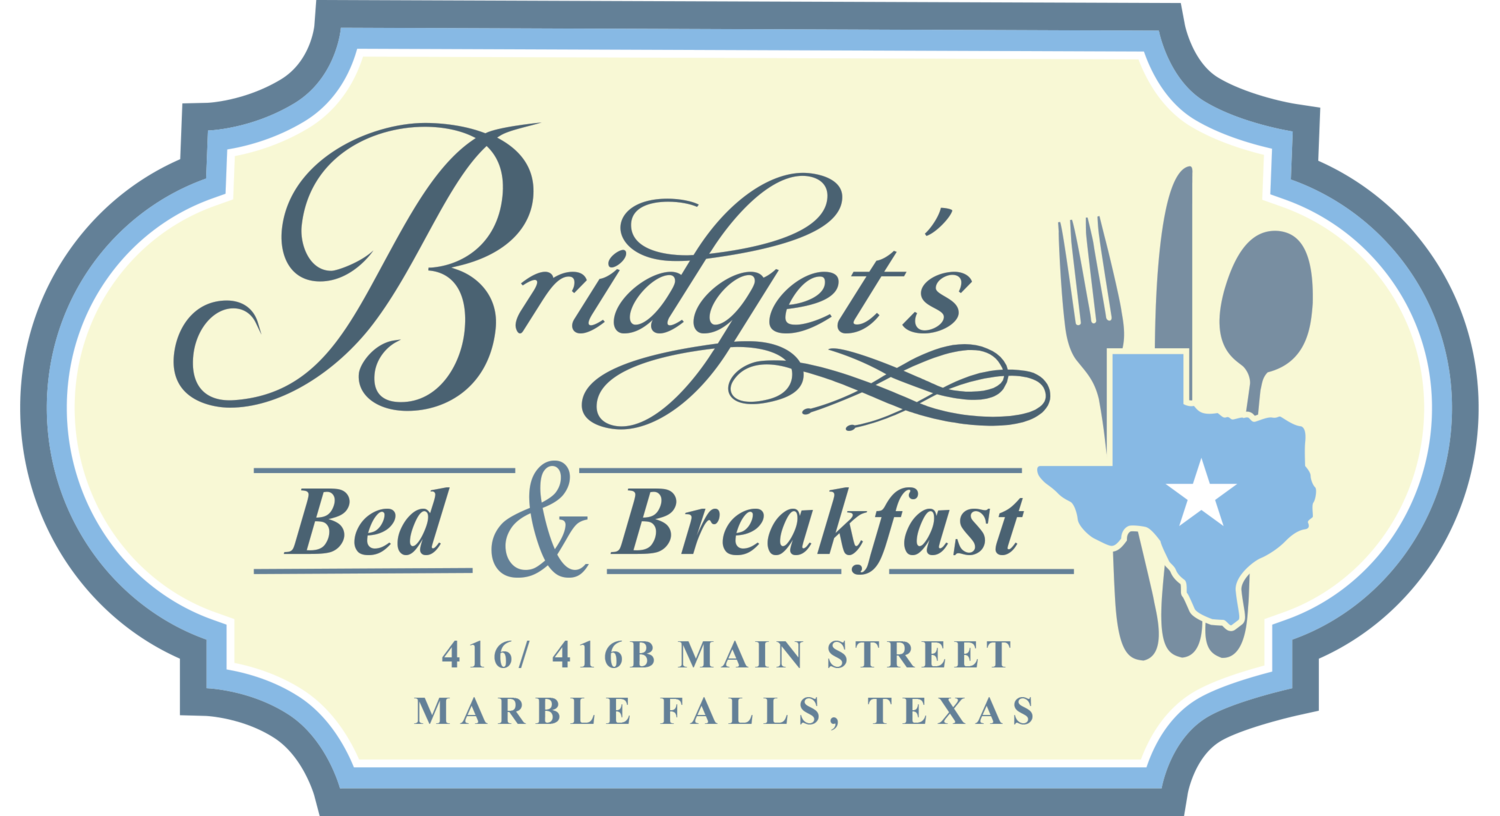 Bridget's Bed and Breakfast